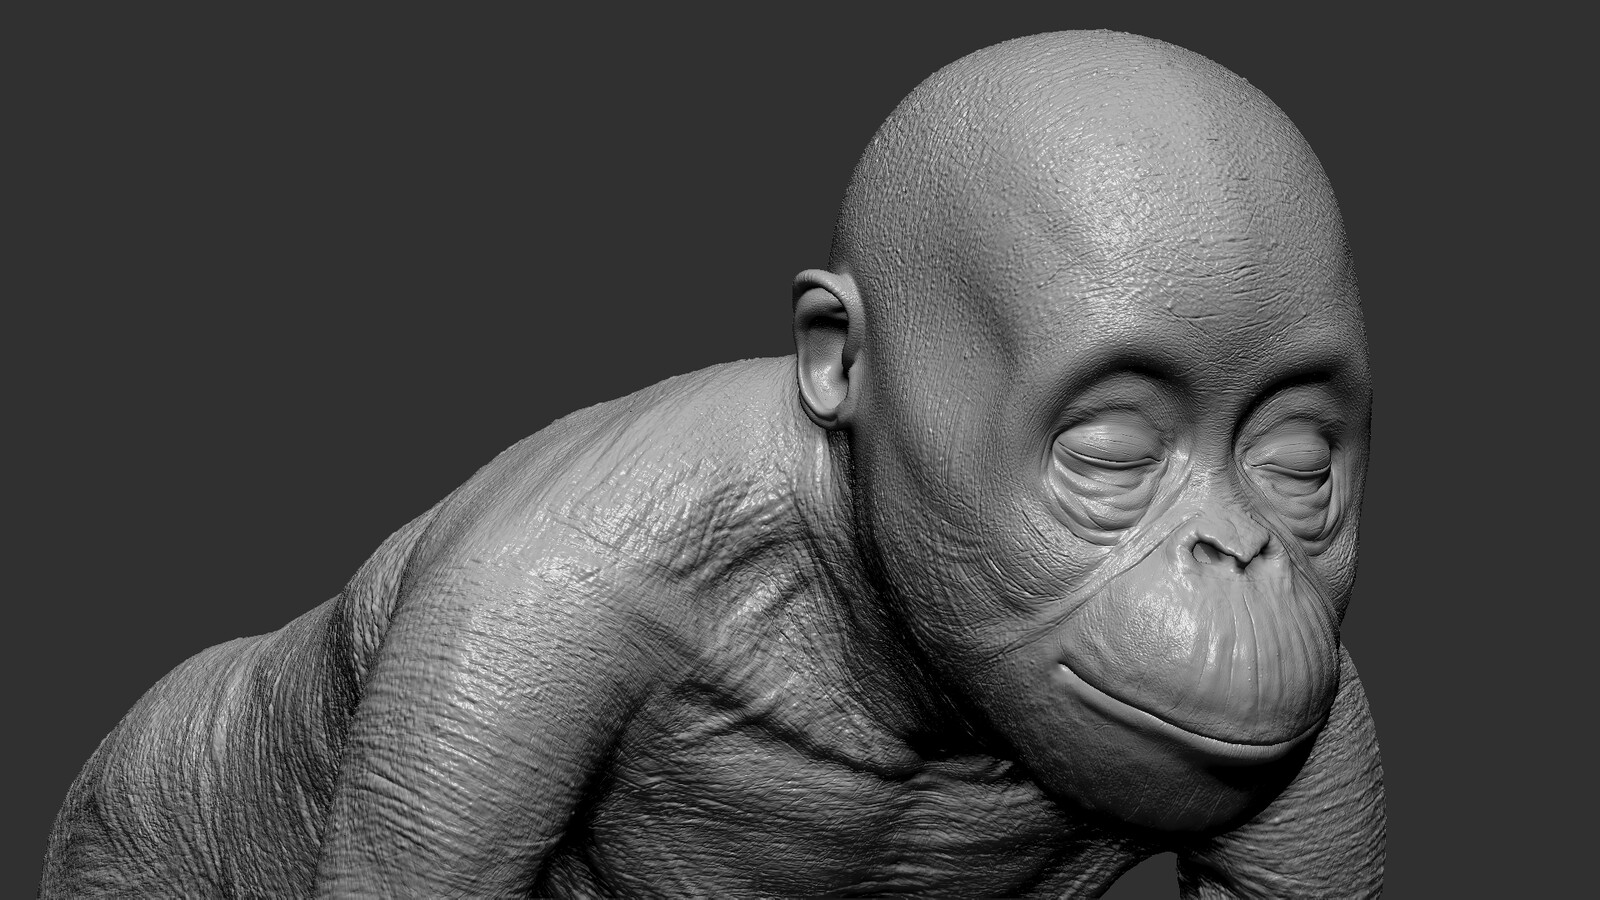 hand sculpted details using HD geometry in zbrush